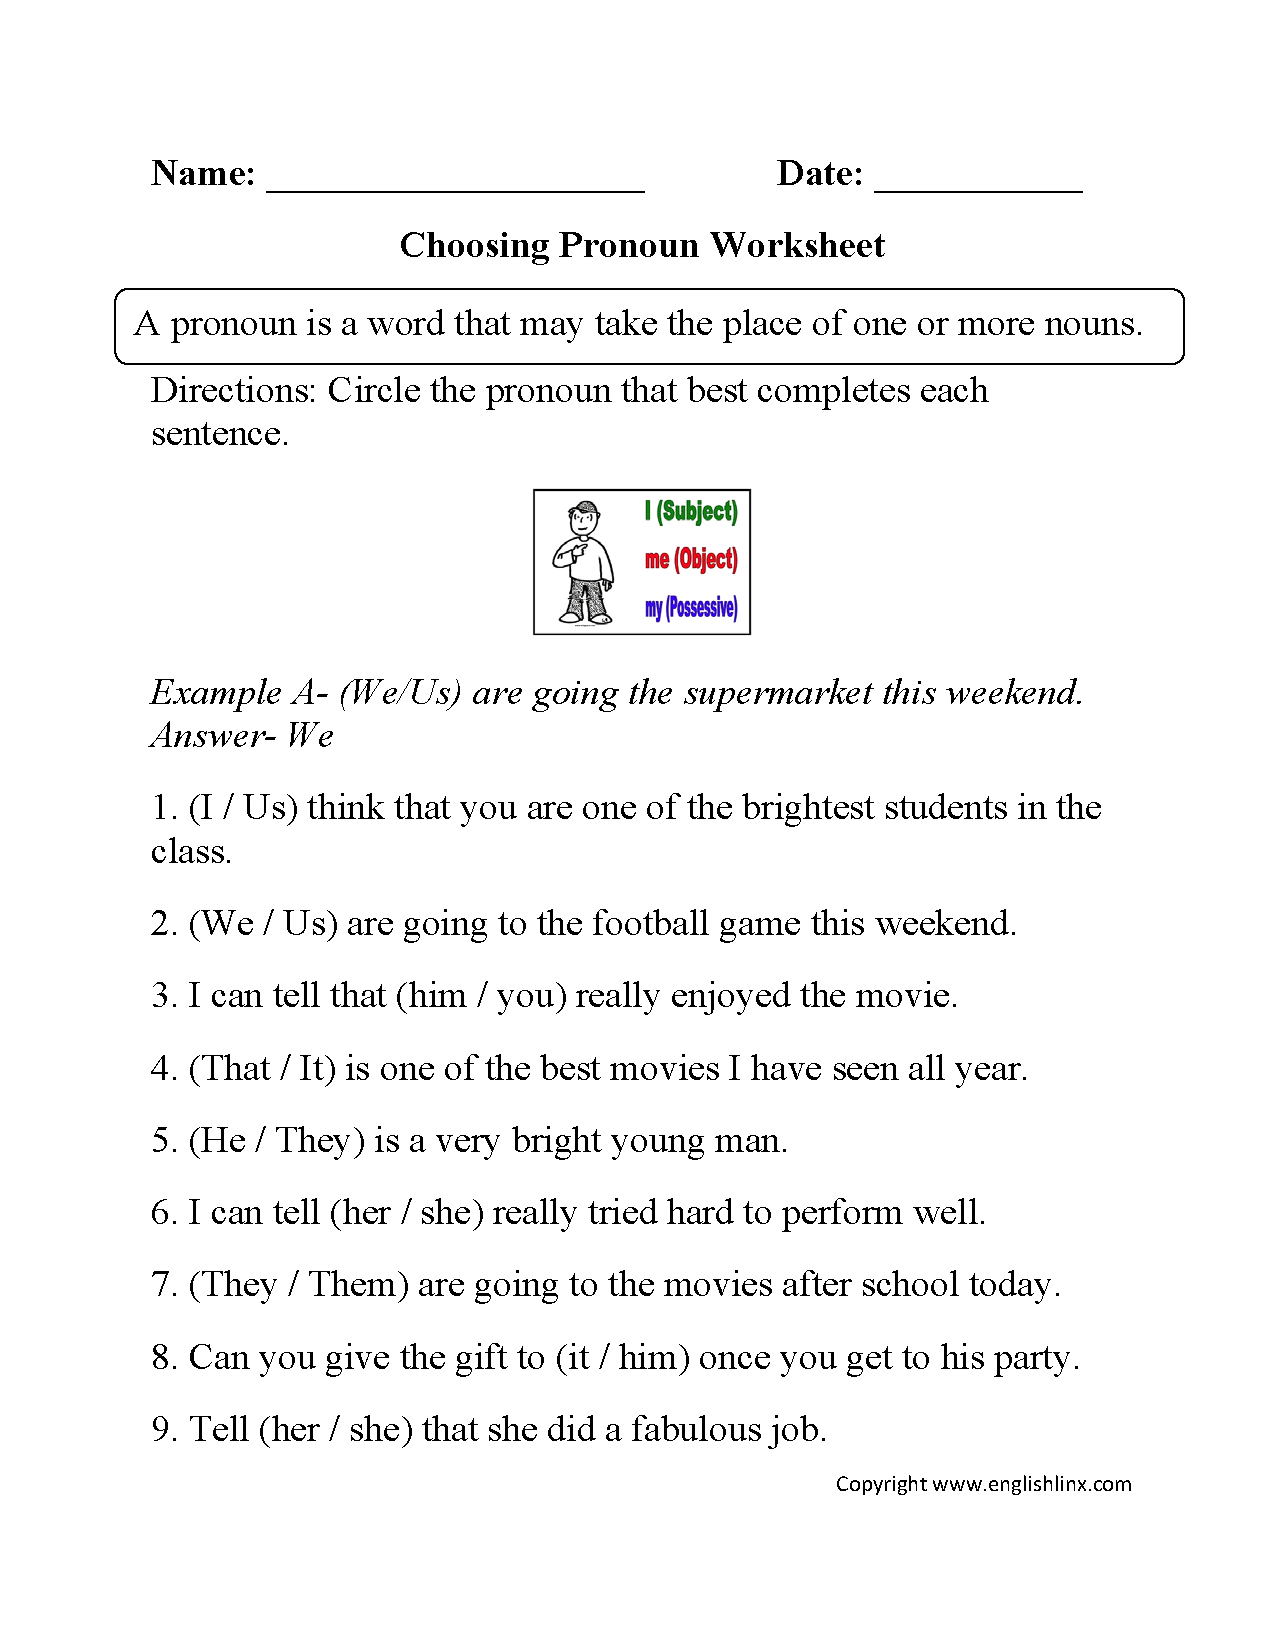 Choosing Pronoun Worksheet